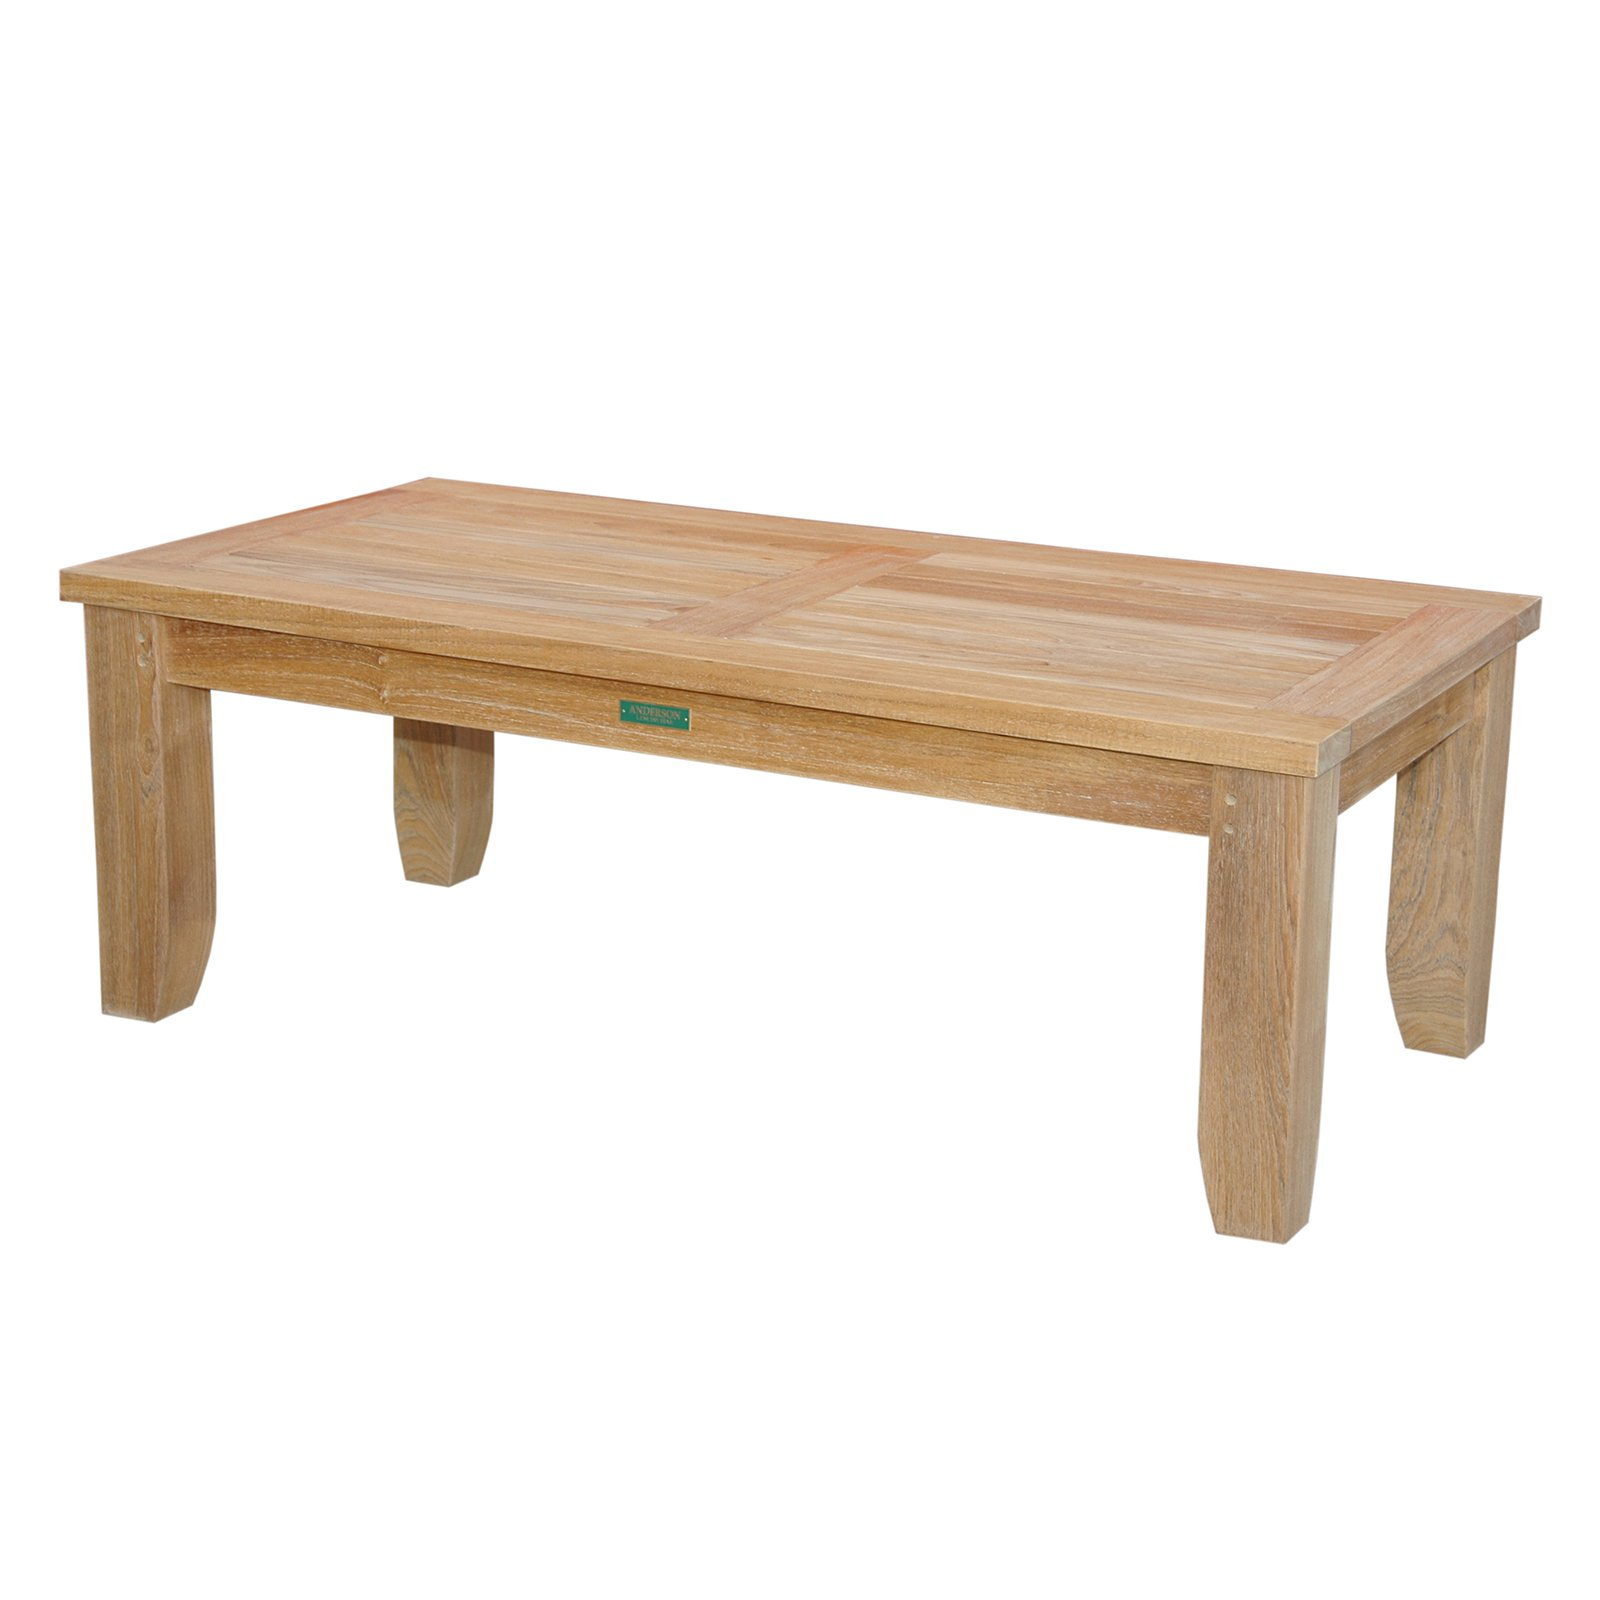 Anderson Teak Luxe Outdoor Coffee Table by Anderson Teak